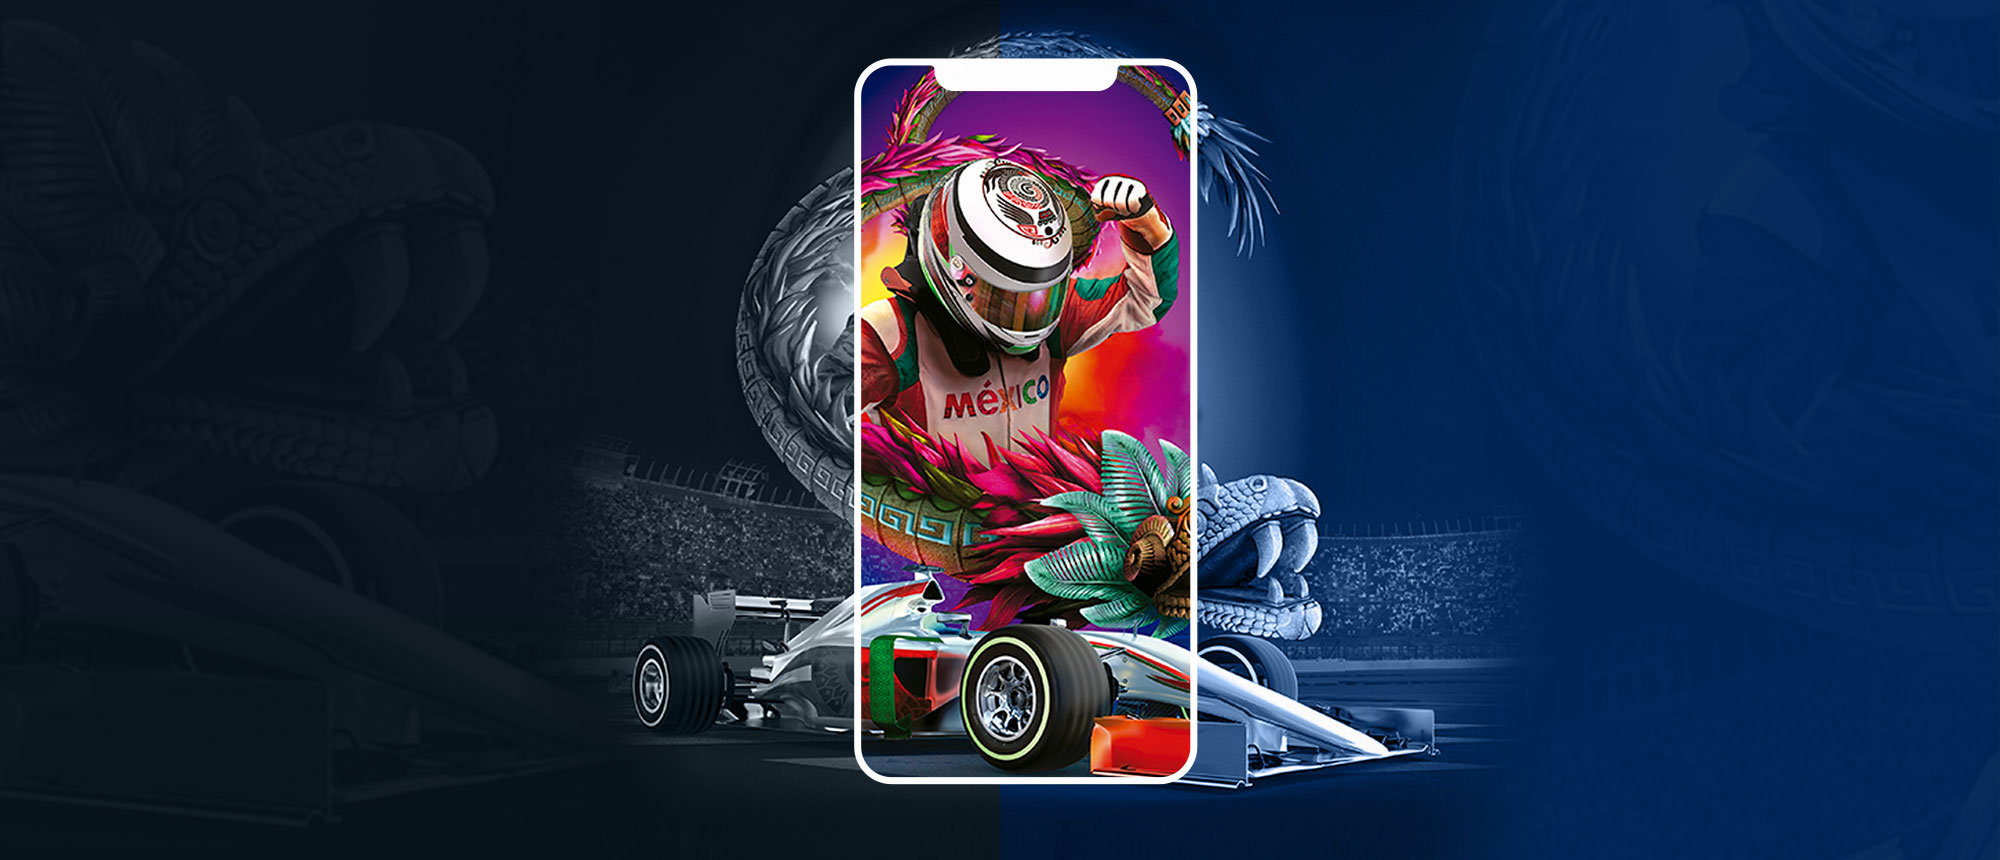 PUNK | F1 Mexico Grand Prix - Mobile App Development